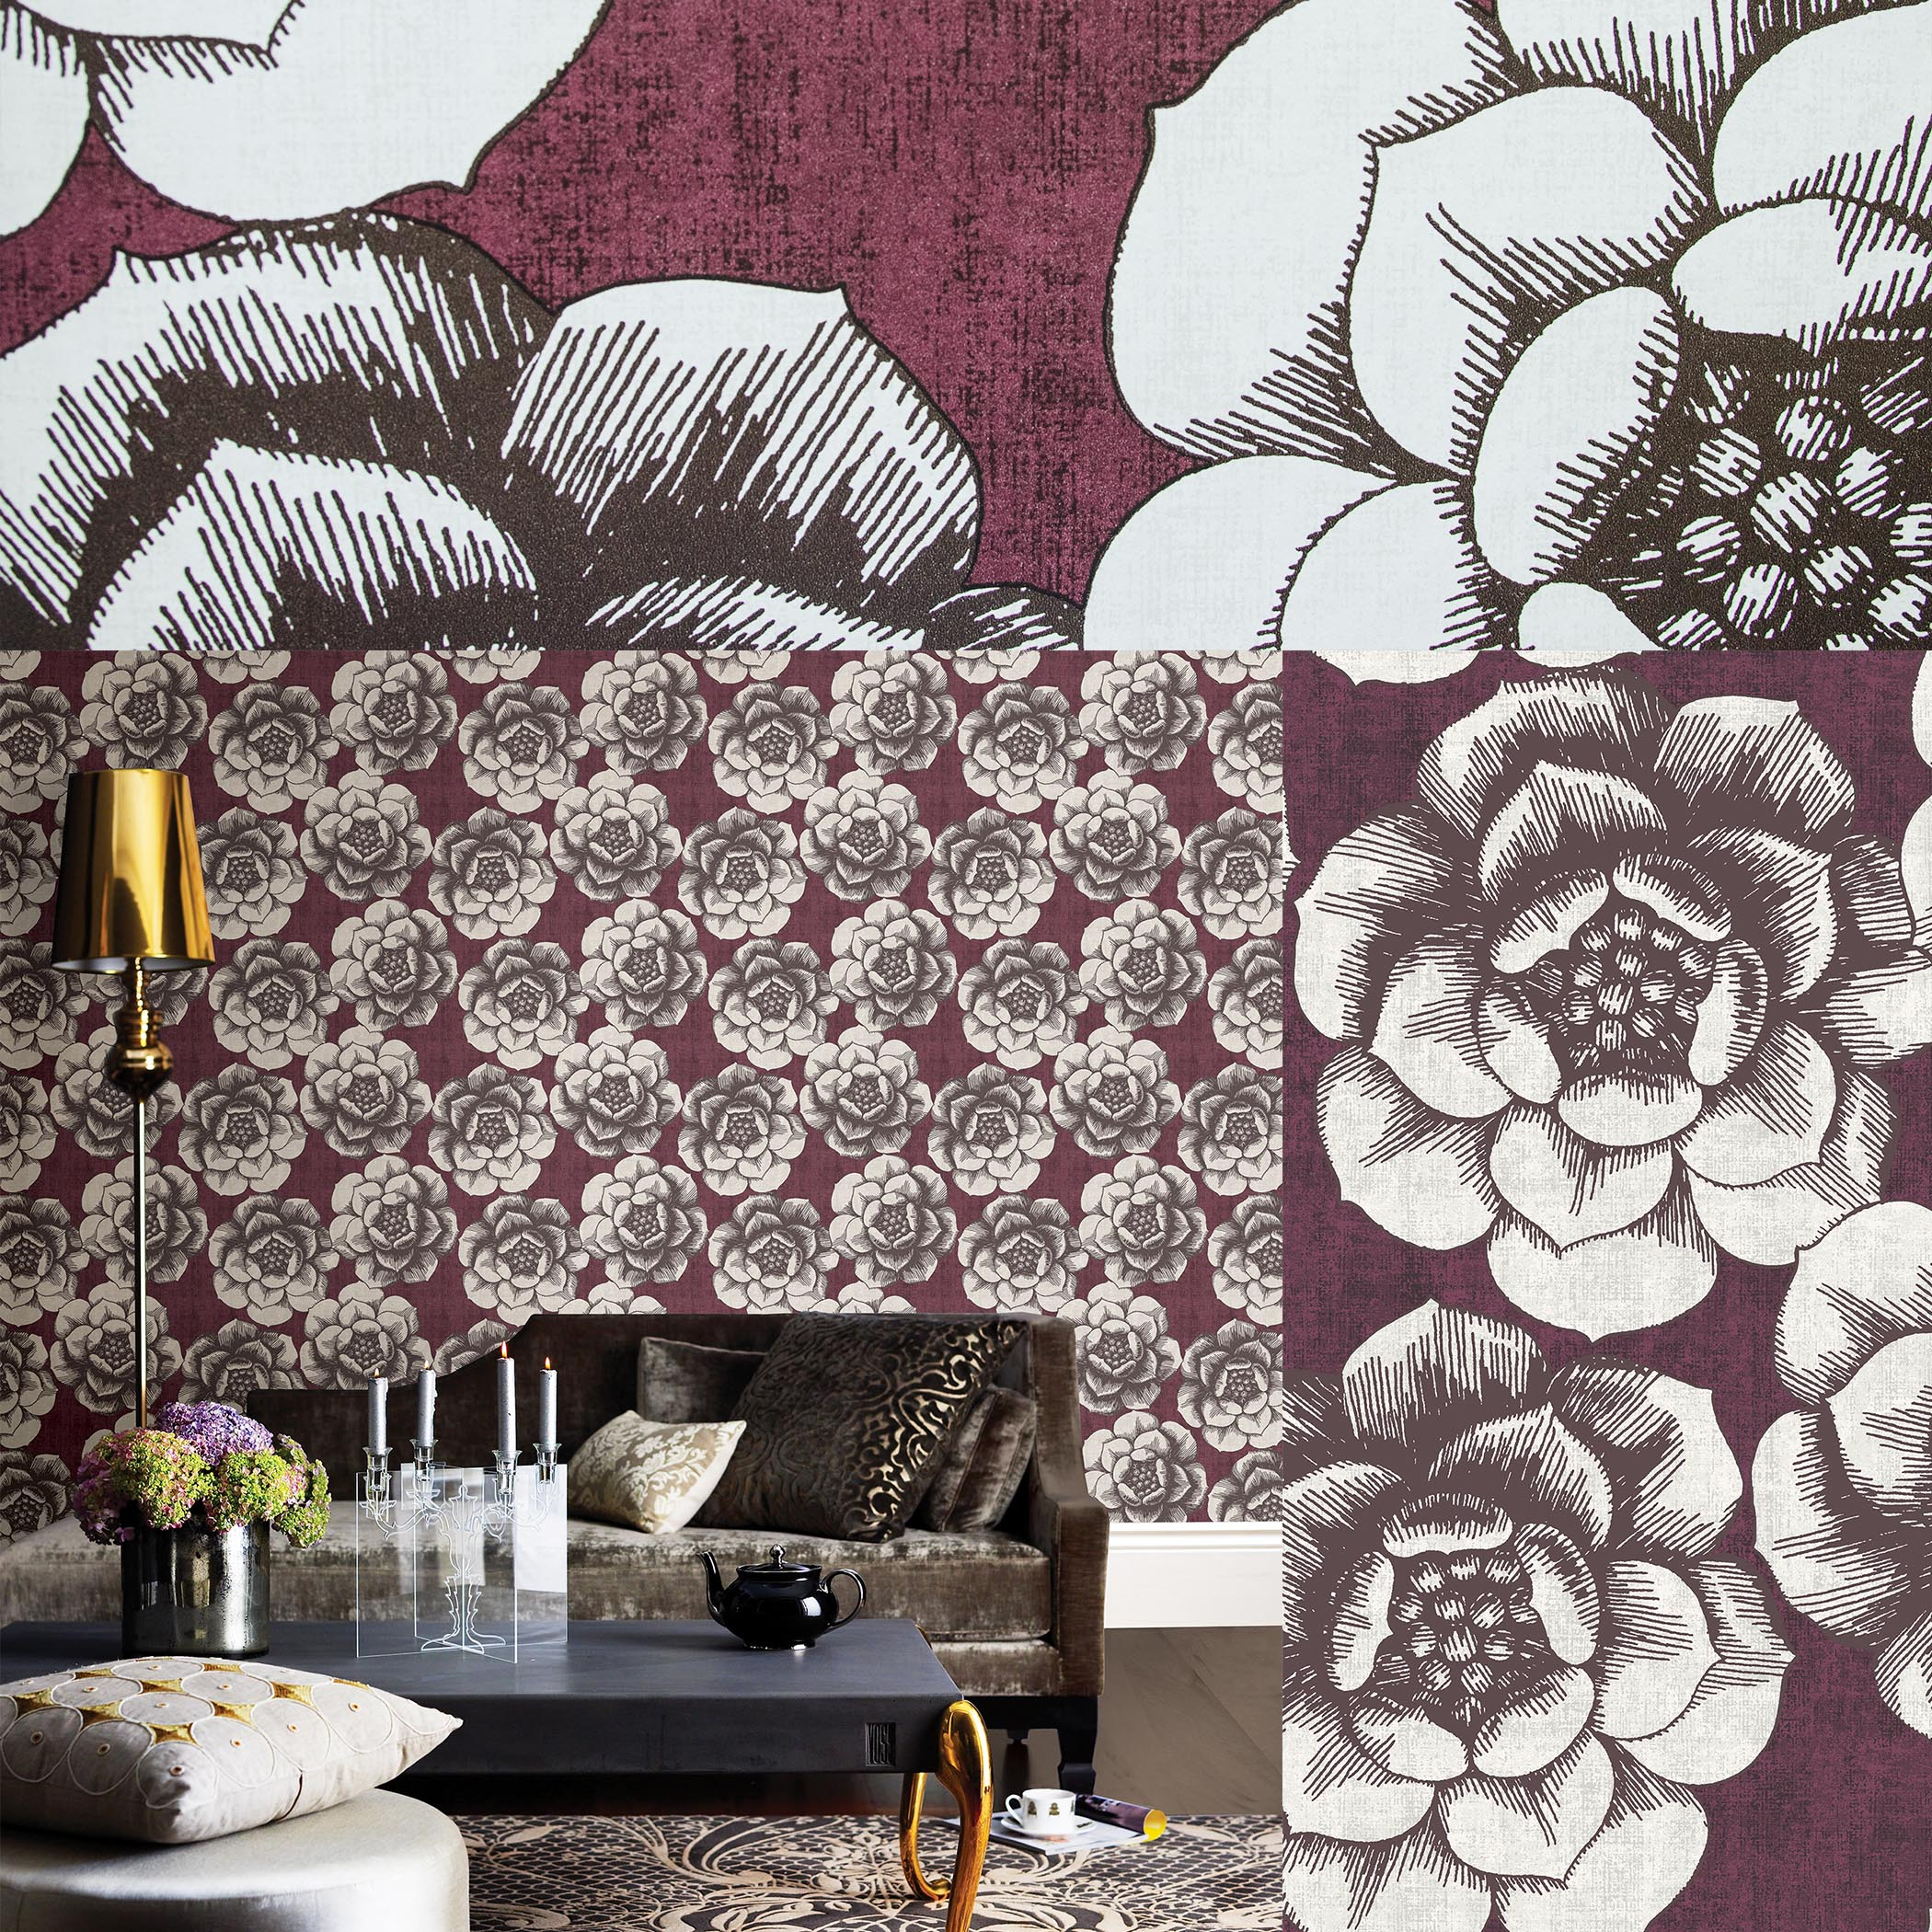 Moonlight Wallpaper Collection Dark Dreamy And Bold Brewster Home